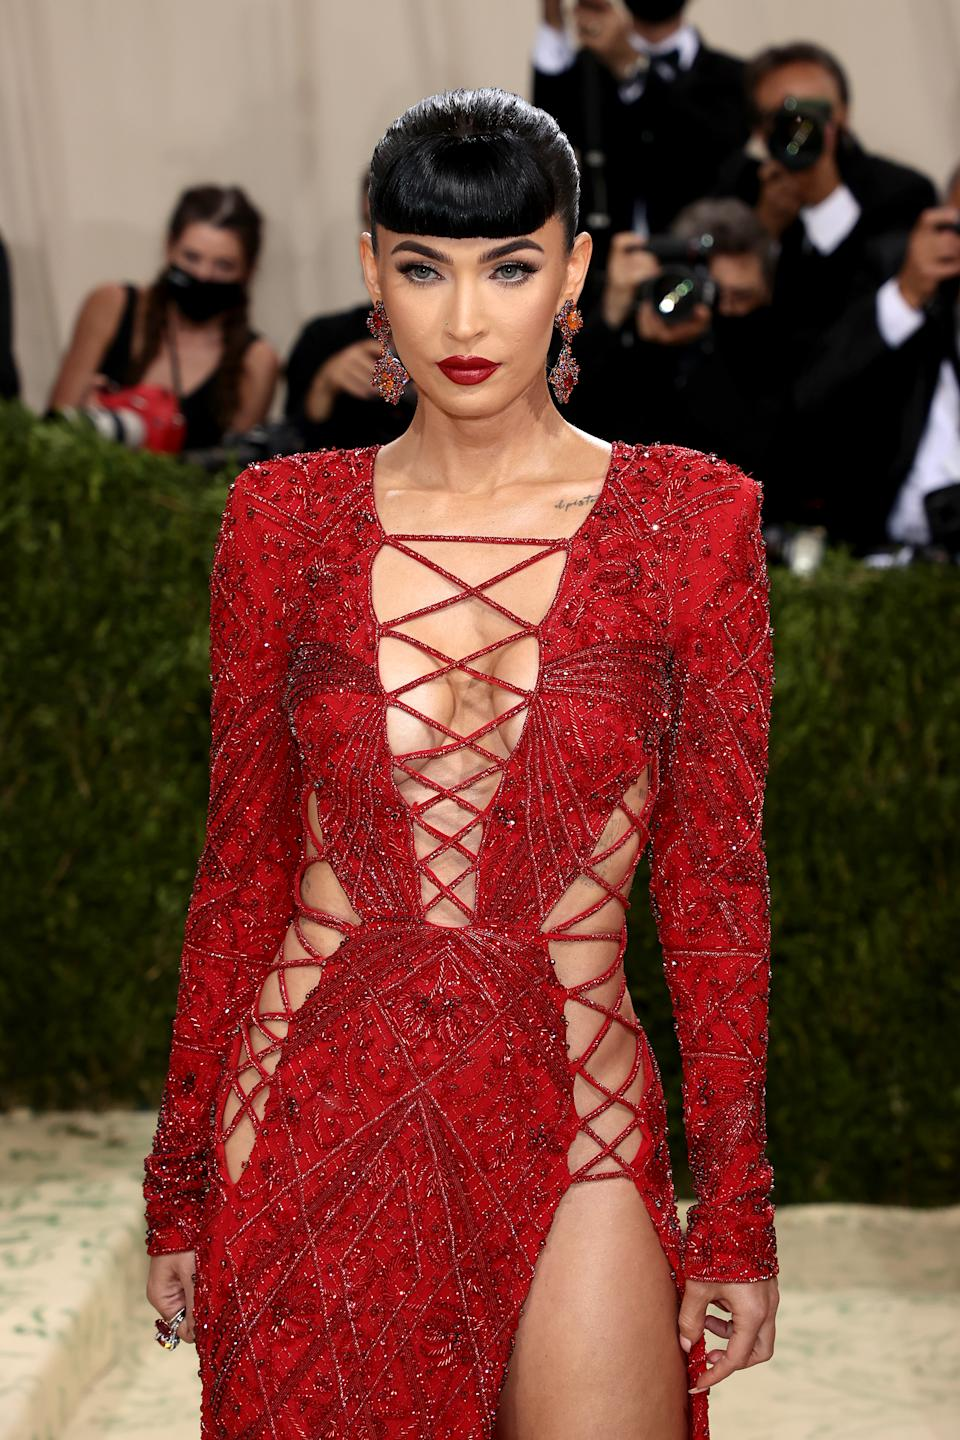 NEW YORK, NEW YORK - SEPTEMBER 13: Megan Fox attends The 2021 Met Gala Celebrating In America: A Lexicon Of Fashion at Metropolitan Museum of Art on September 13, 2021 in New York City. (Photo by Dimitrios Kambouris/Getty Images for The Met Museum/Vogue )